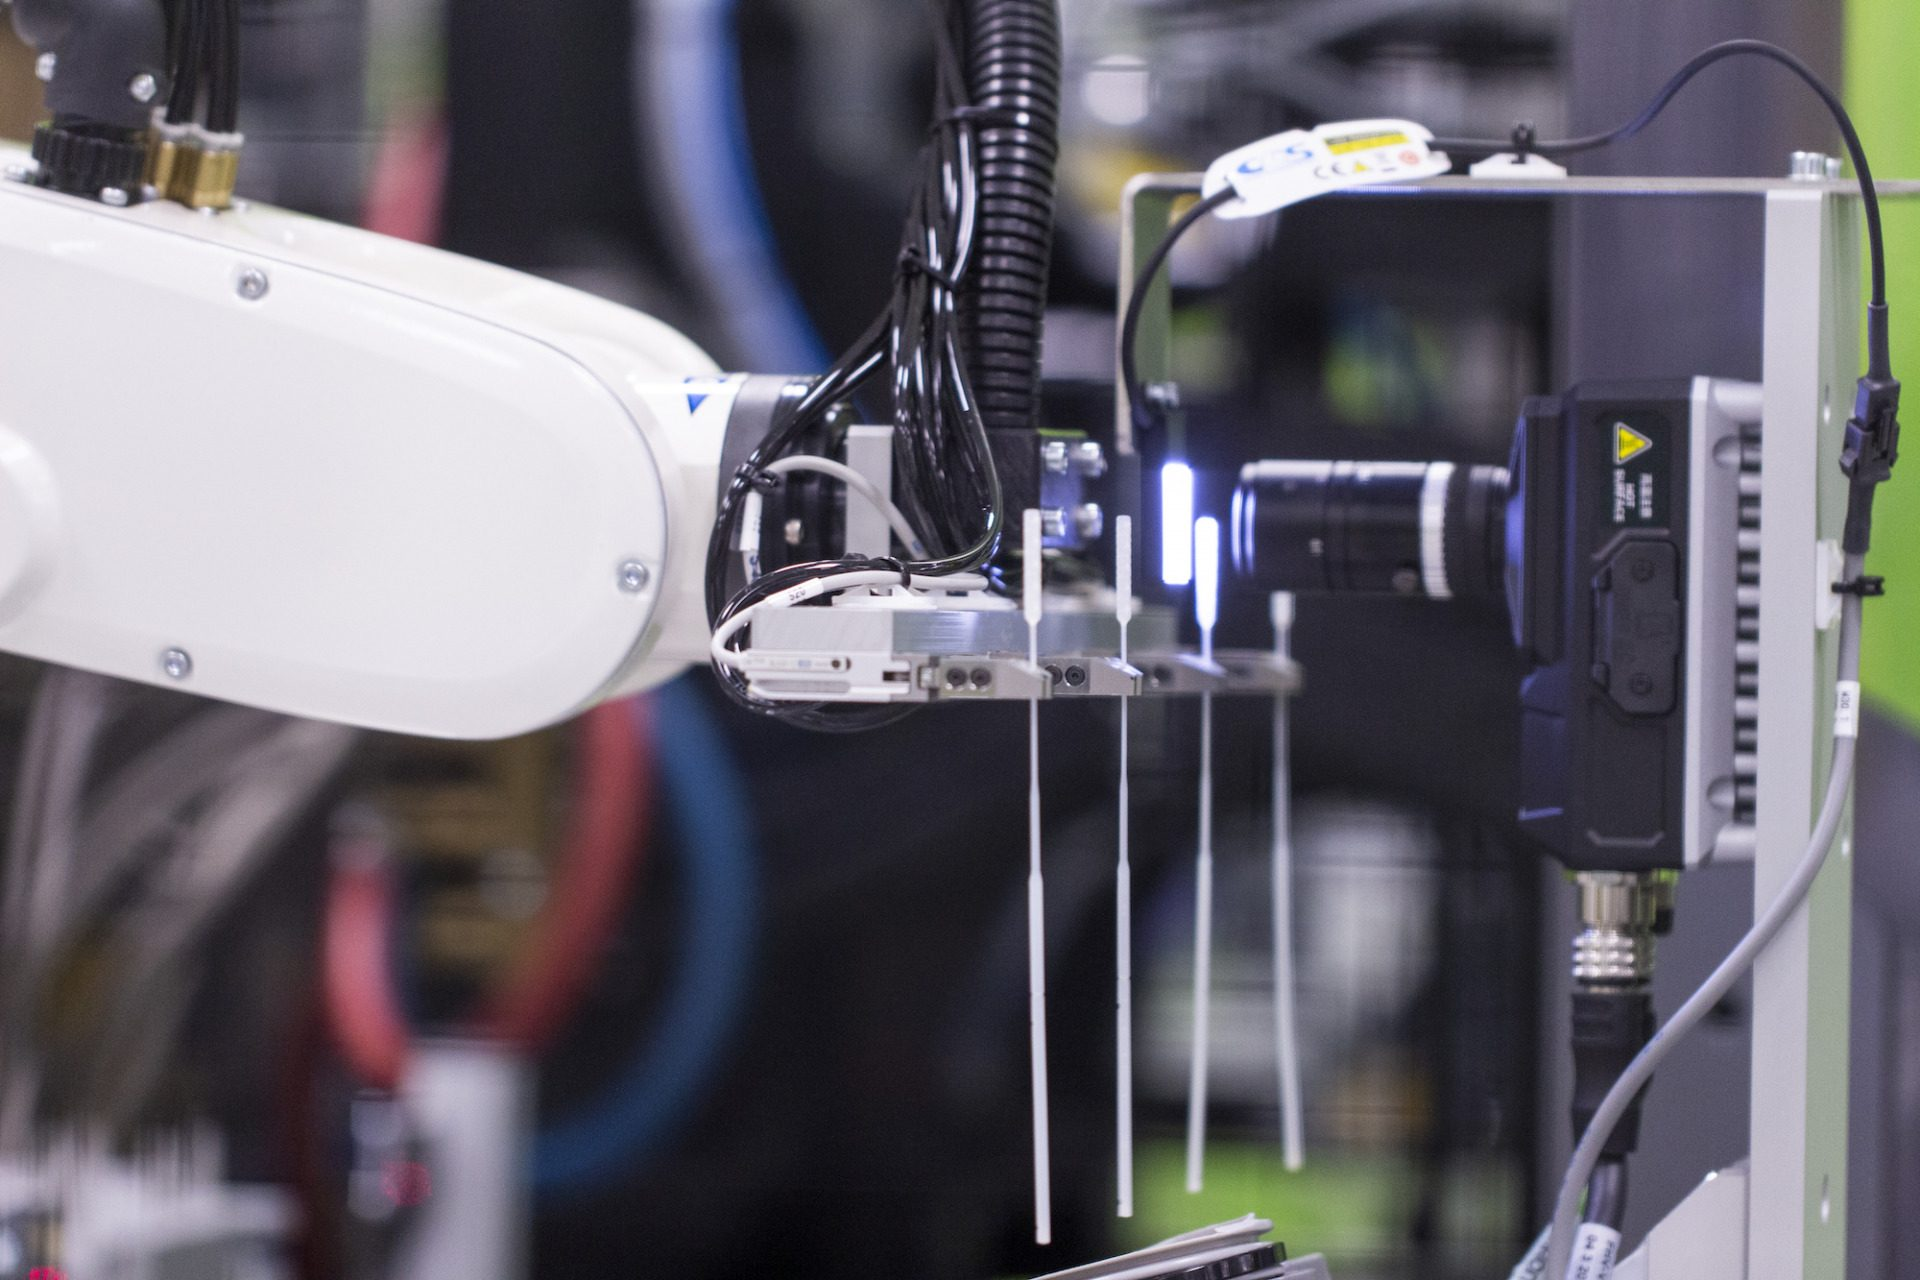 A medical device being inspected by machine vision